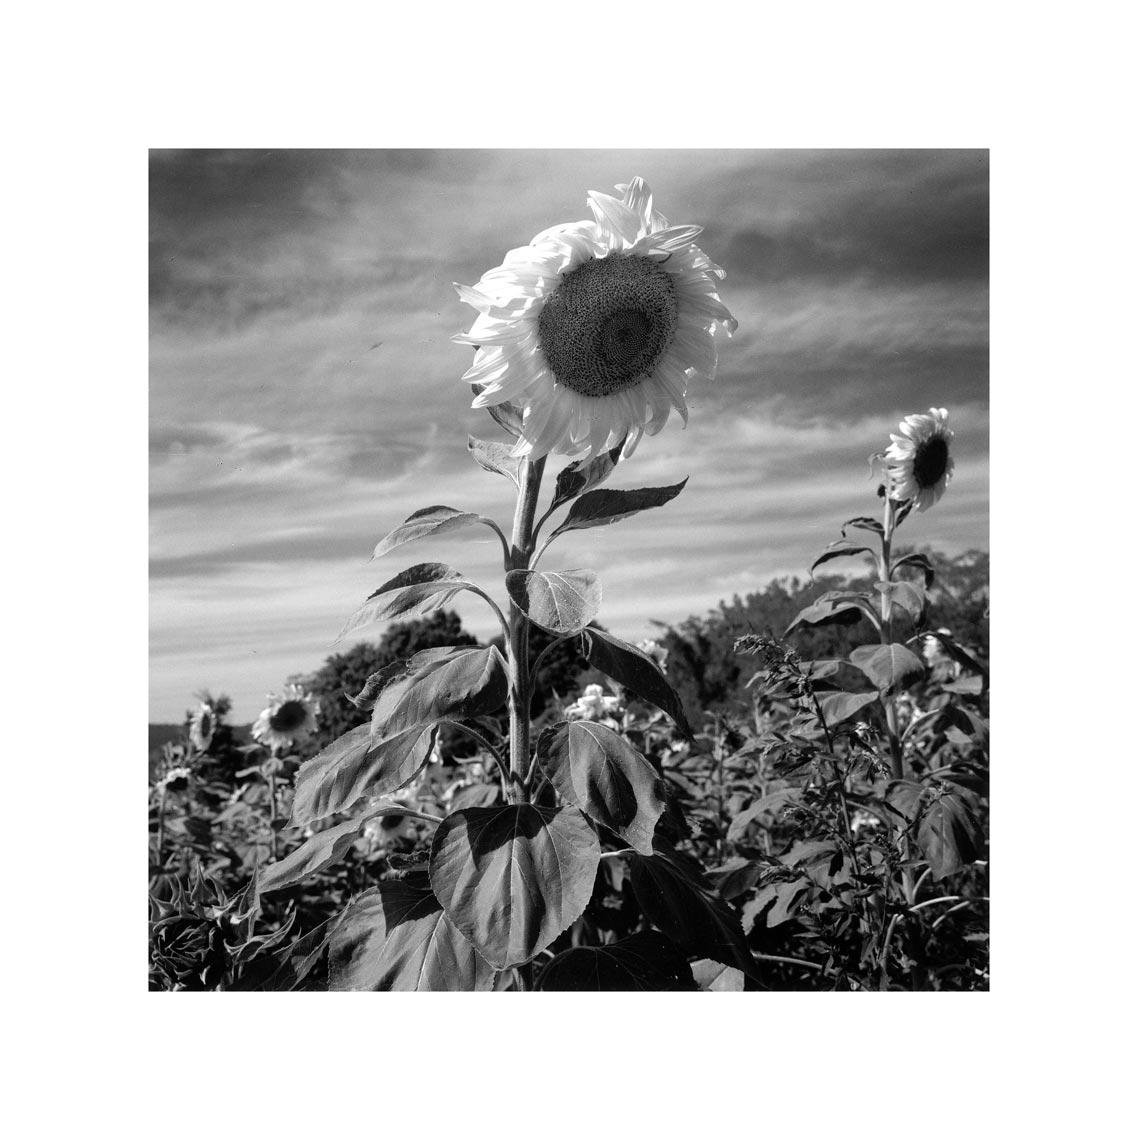 266-Sunflowers,-Ulster-county 3.jpg